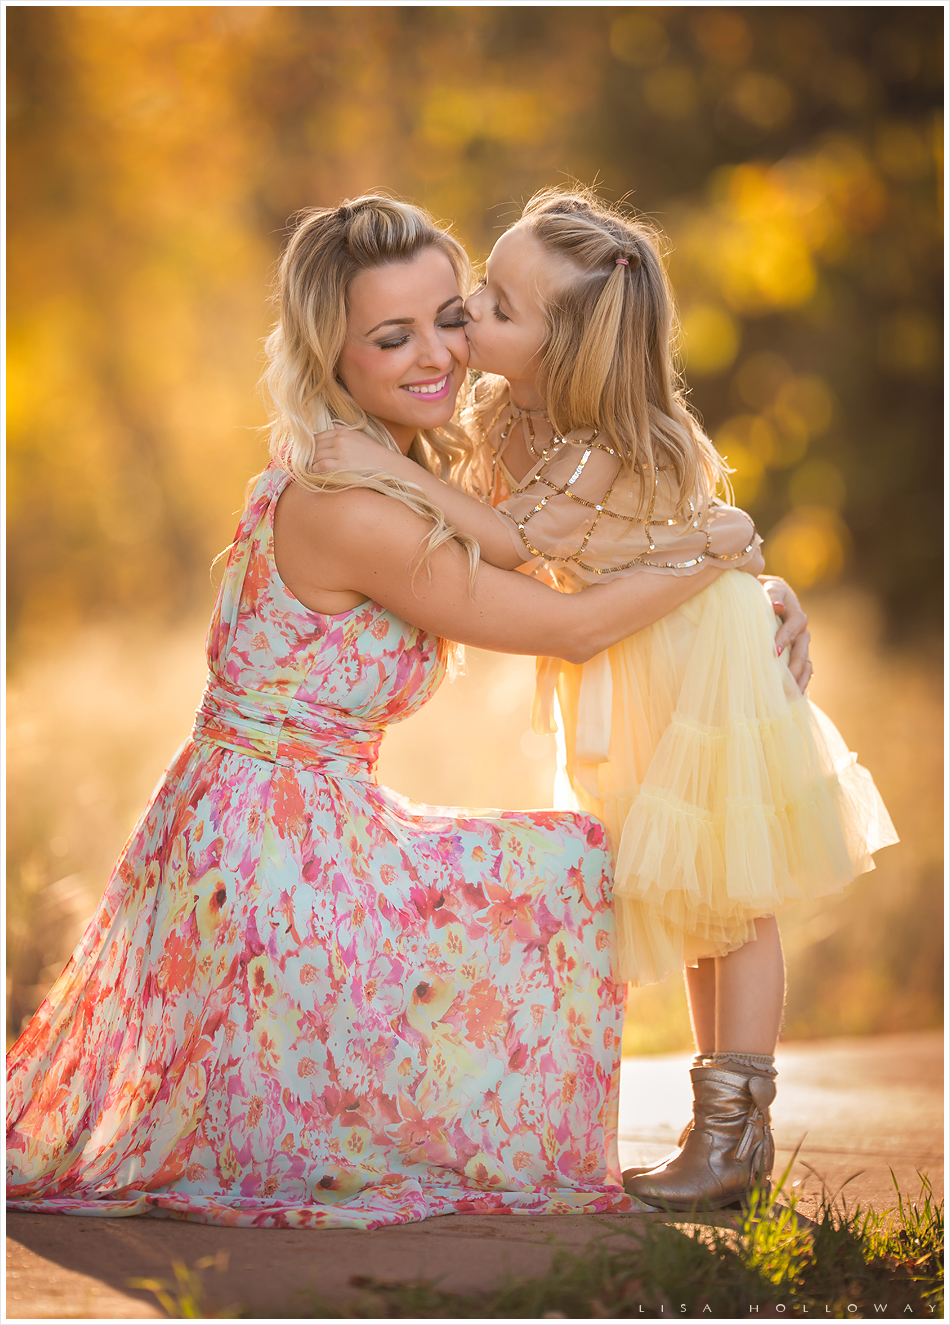 Young girl in yellow dress gives her mother a kiss on the cheek. LJHolloway Photography is a Las Vegas family photographer.